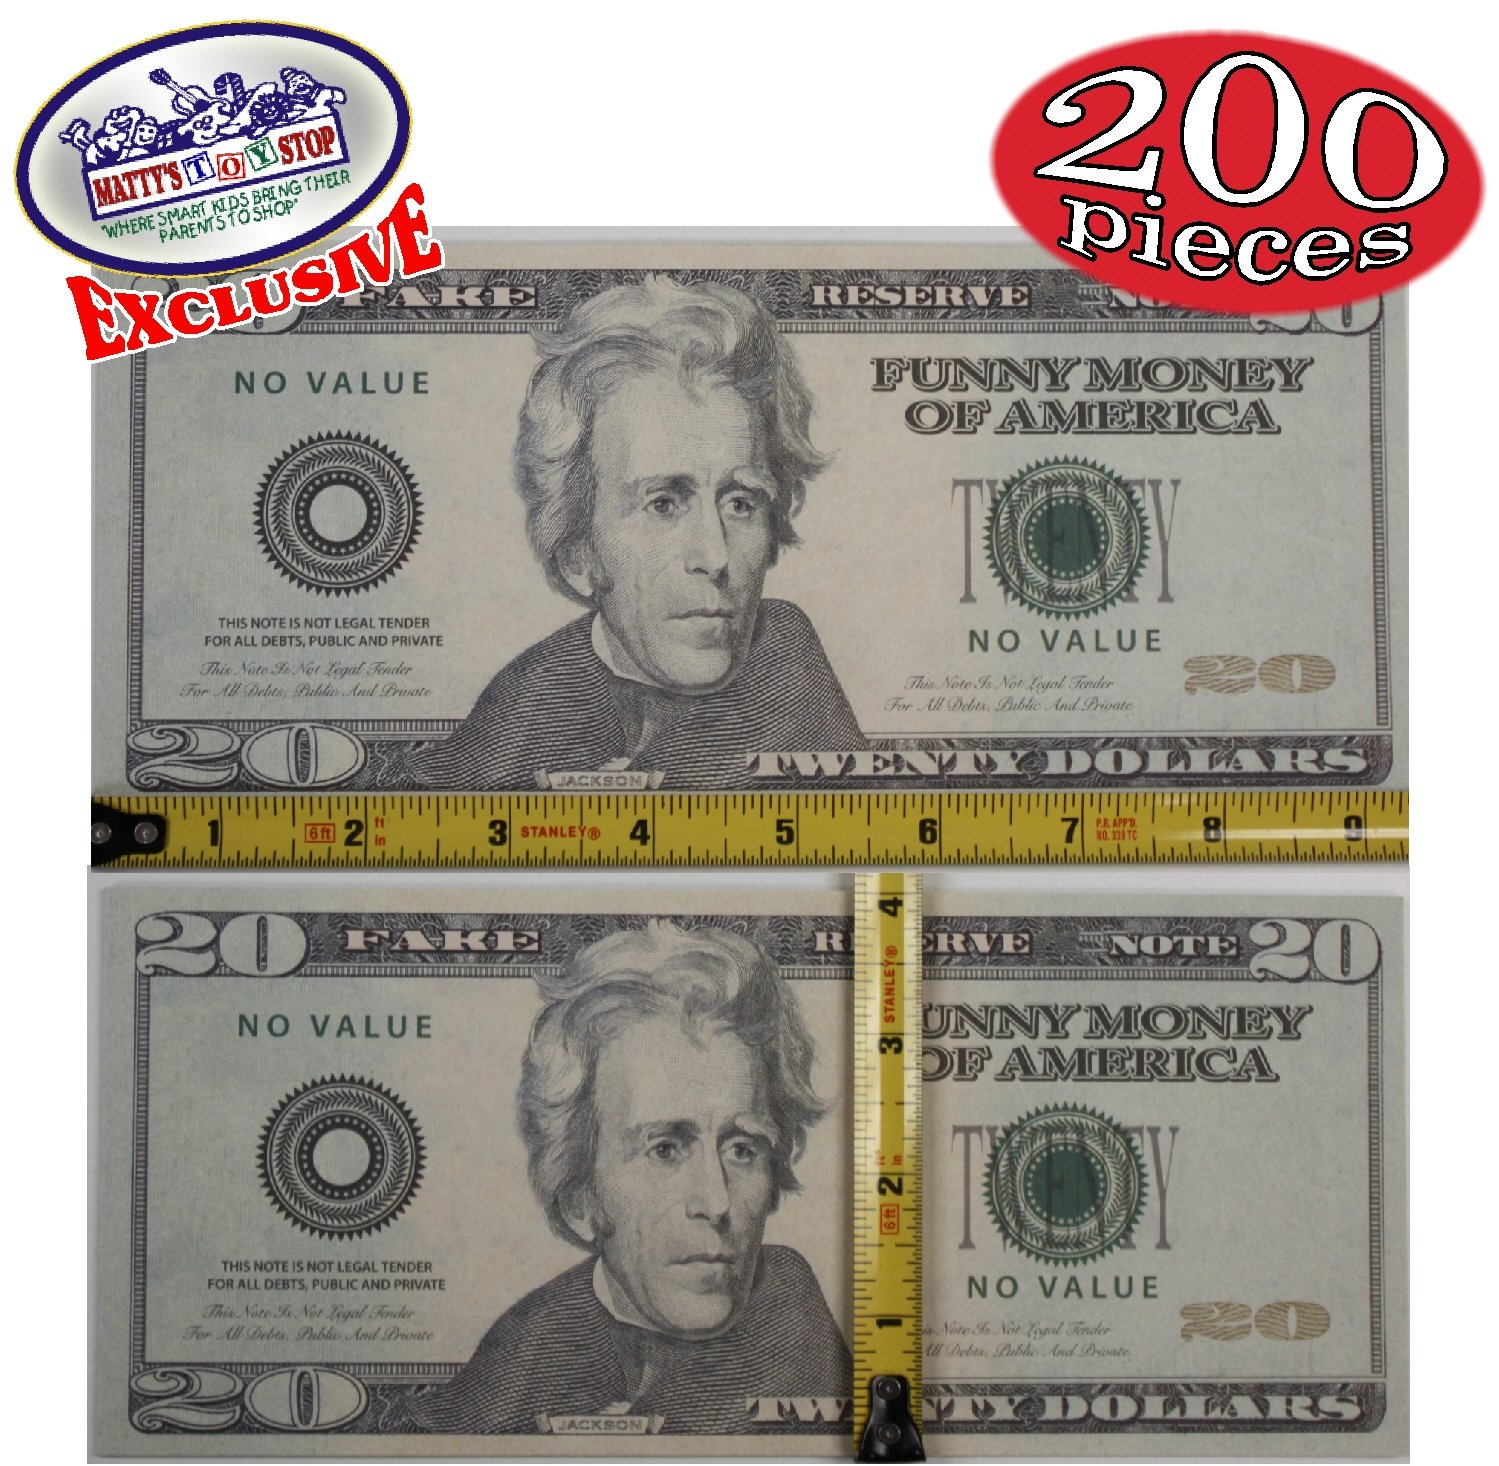 Oversized Fake Replica Play Money - Set of 200 Large Replica Bills (40 each of $1's, $5's, $10's, $20's & $100's)